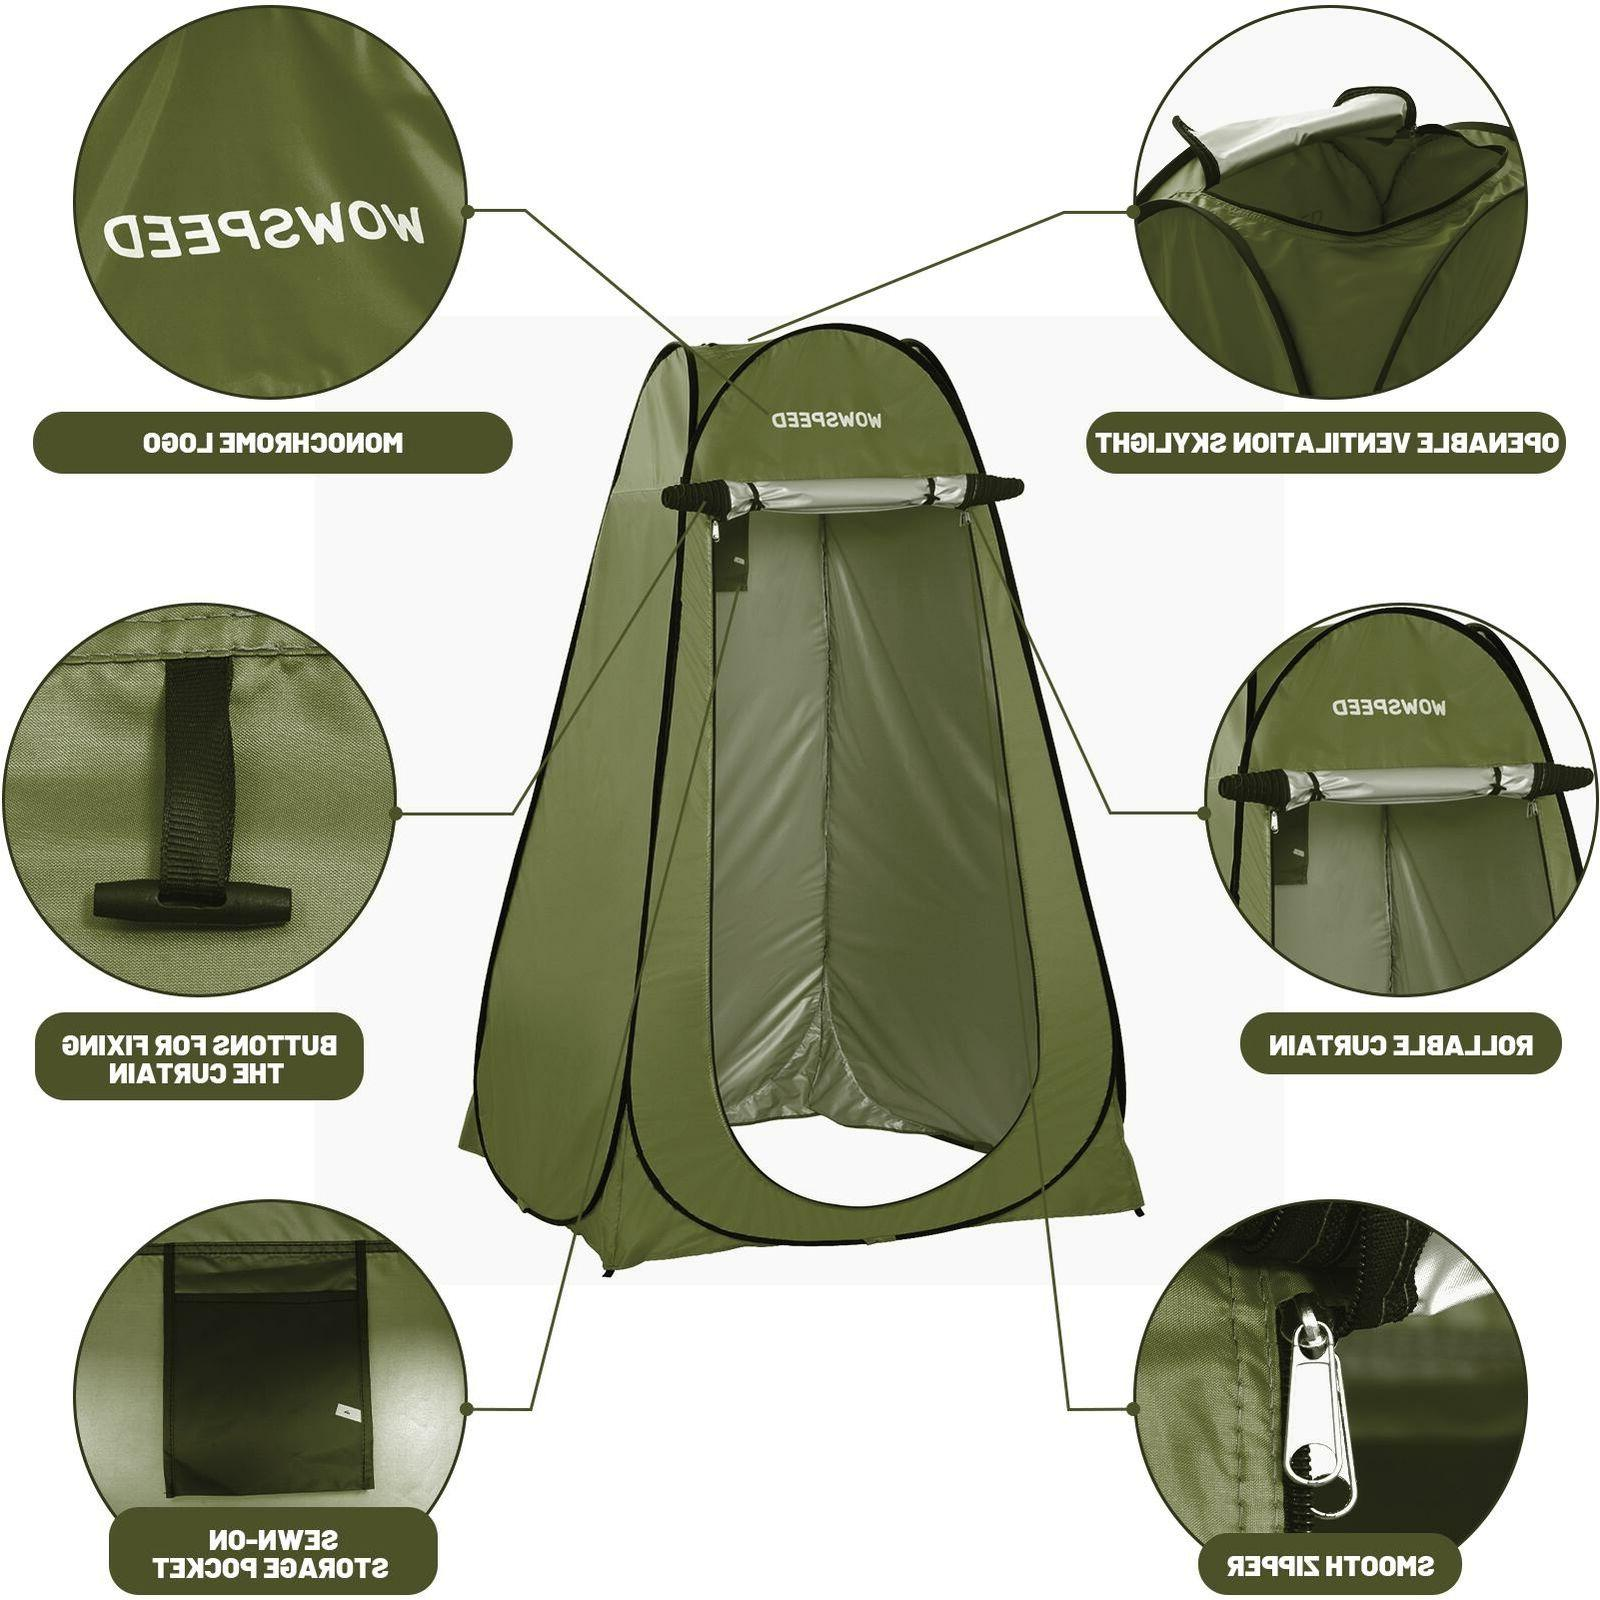 75 Inch Up Privacy Tent for Changing Bathroom Camping